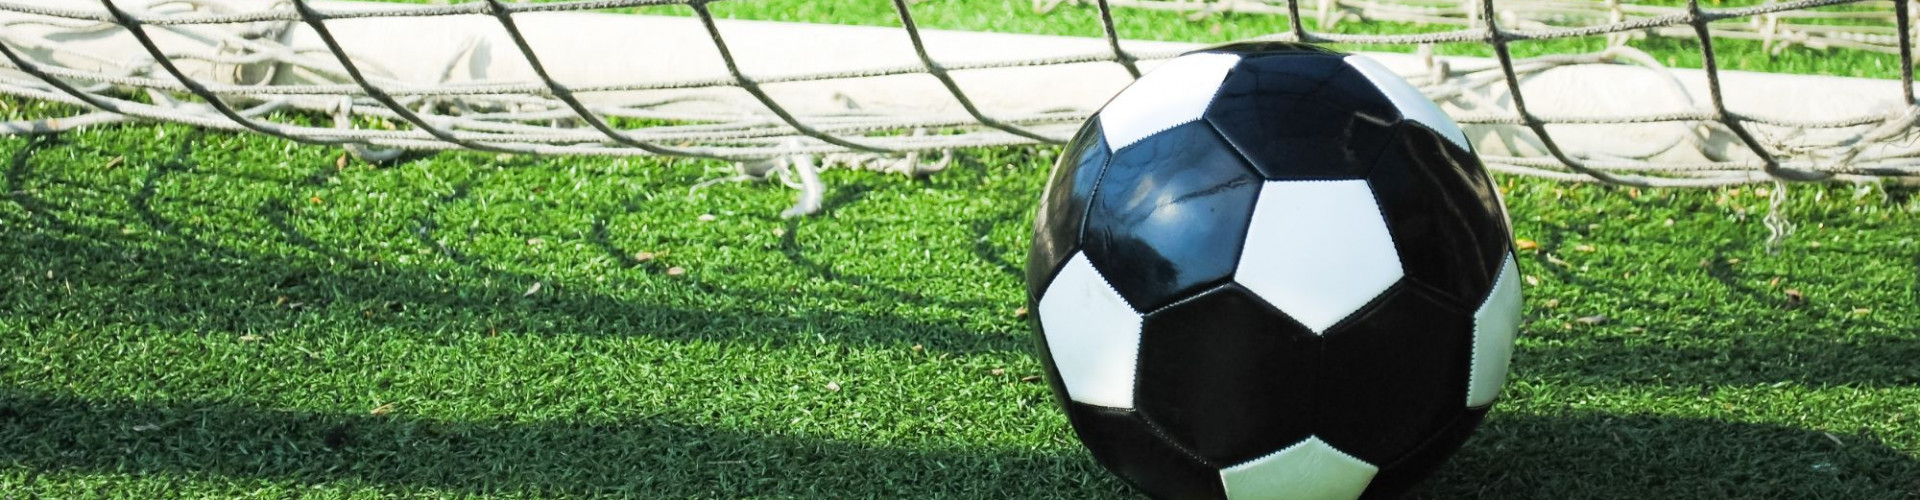 closeup-of-soccer-ball-in-the-goal-net-on-green-lawn